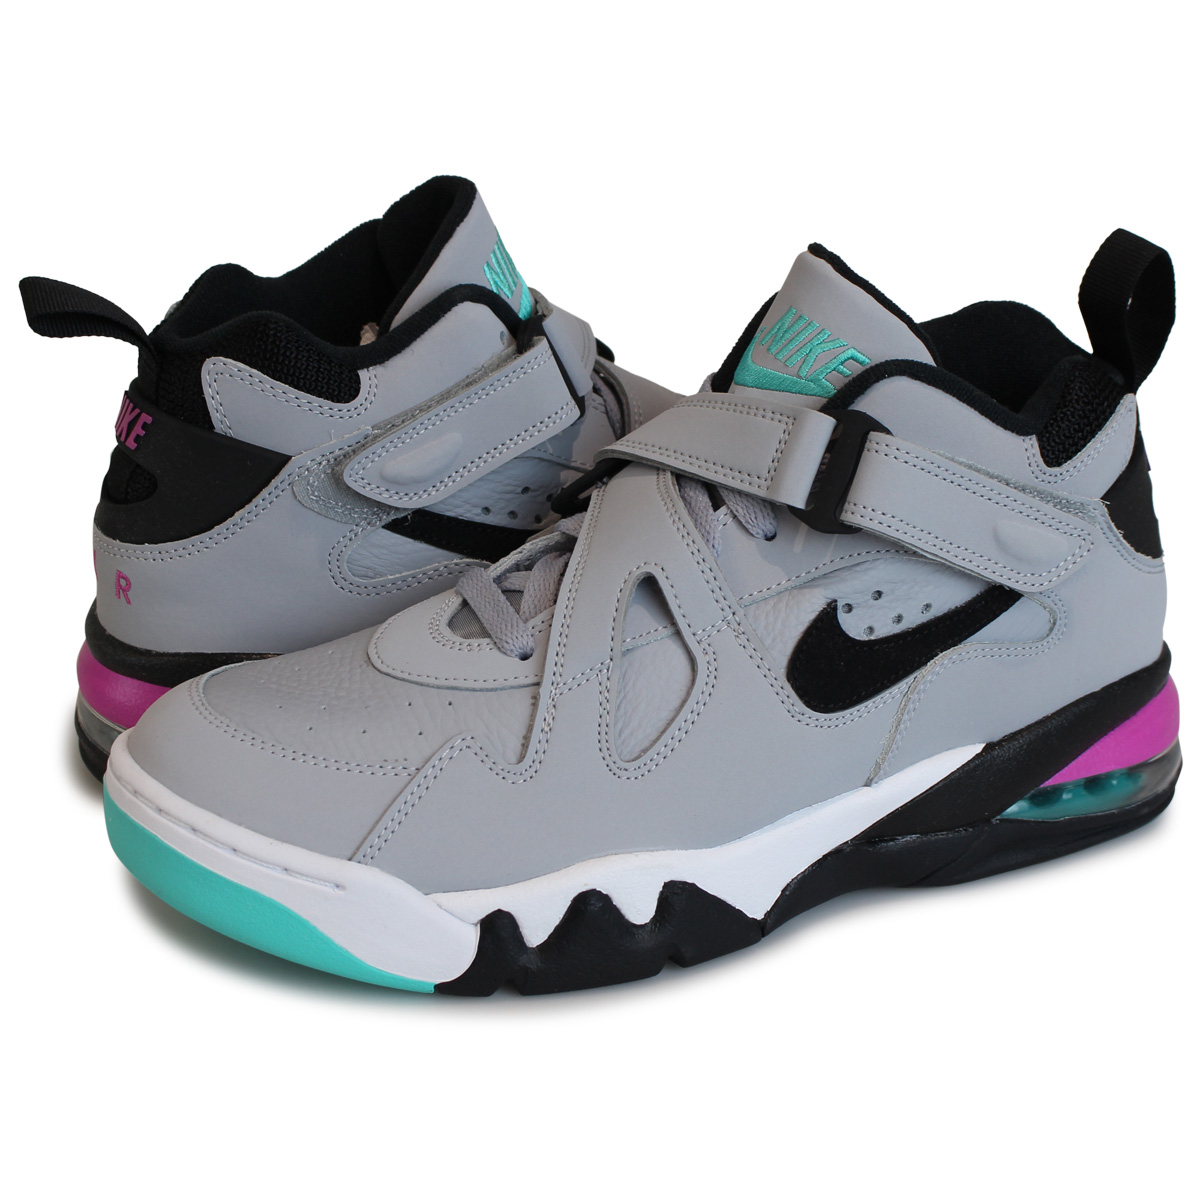 Nike NIKE air force max sneakers men AIR FORCE MAX CB gray AJ7922 003 [reservation 210 additional arrival plan]